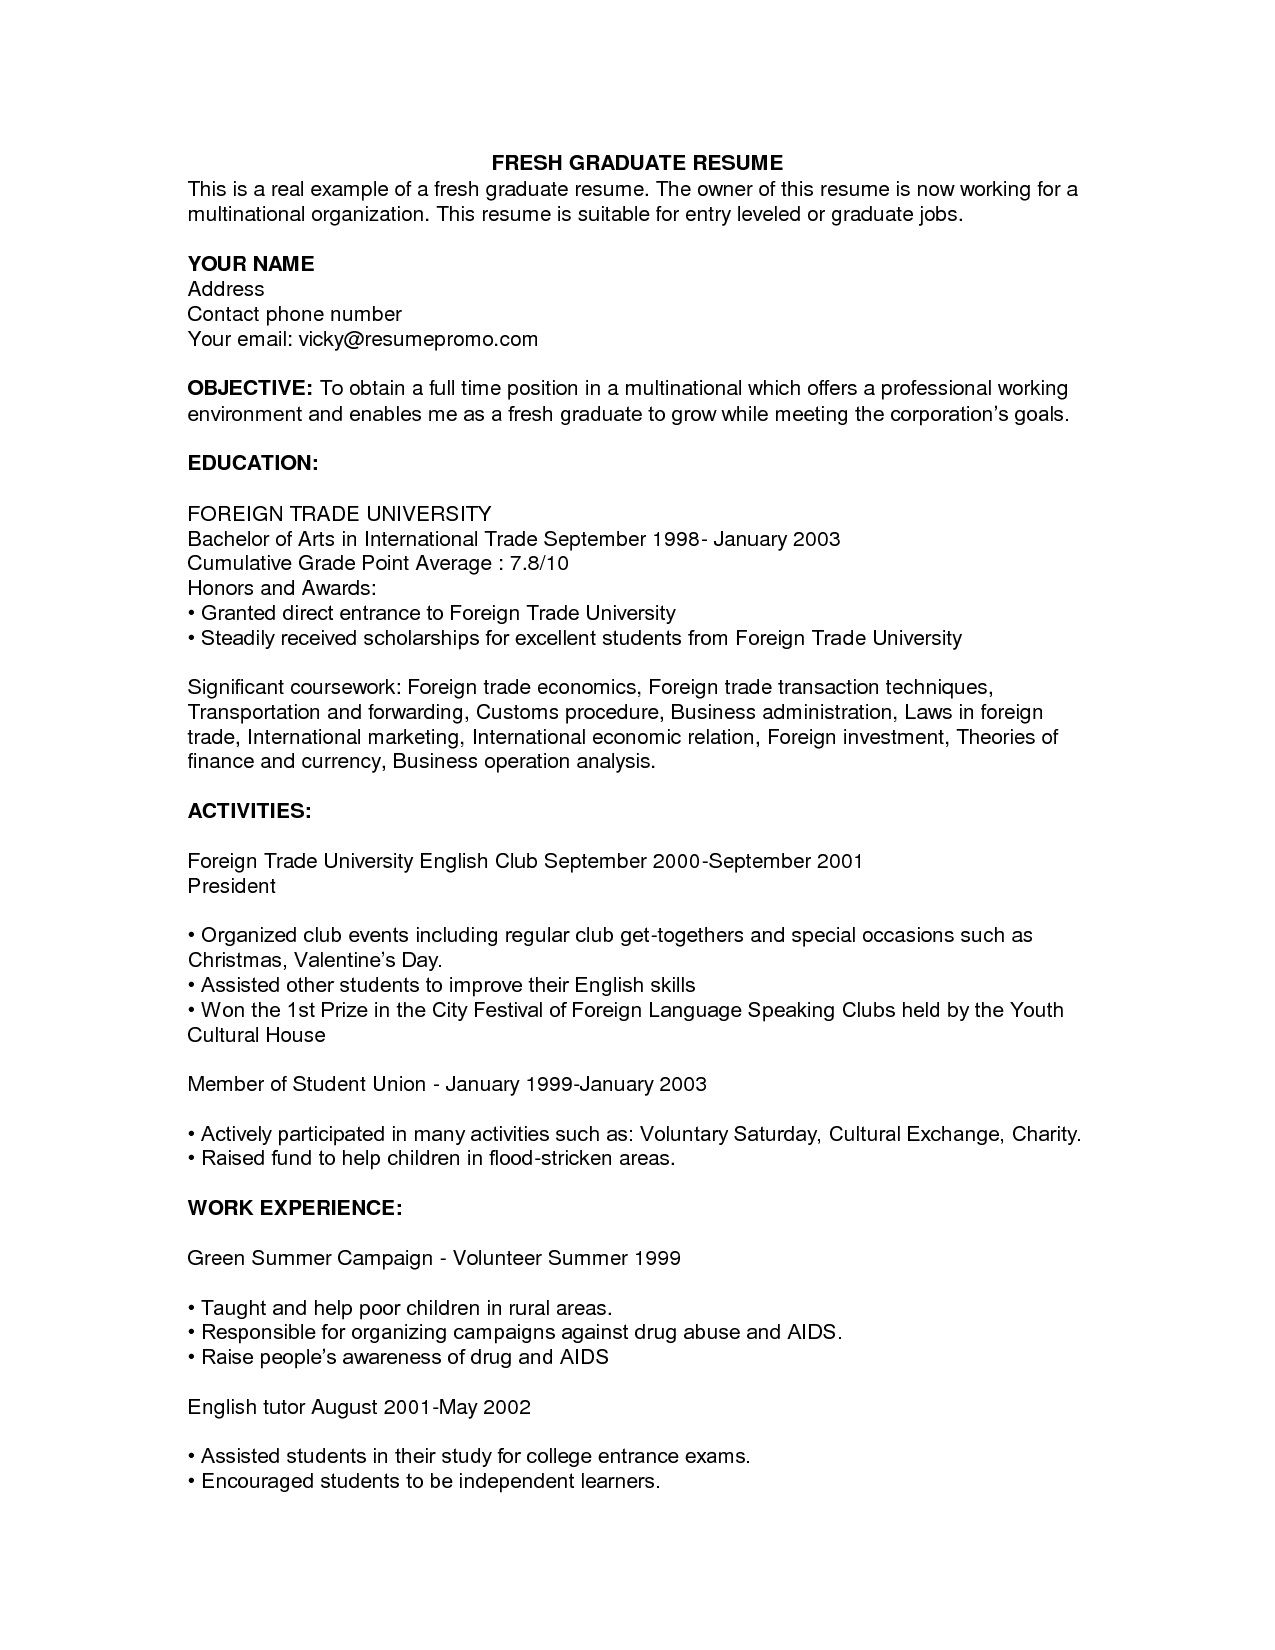 example of resume for fresh graduate are examples we provide as reference to make correct and good quality resume also will give ideas and strategies to